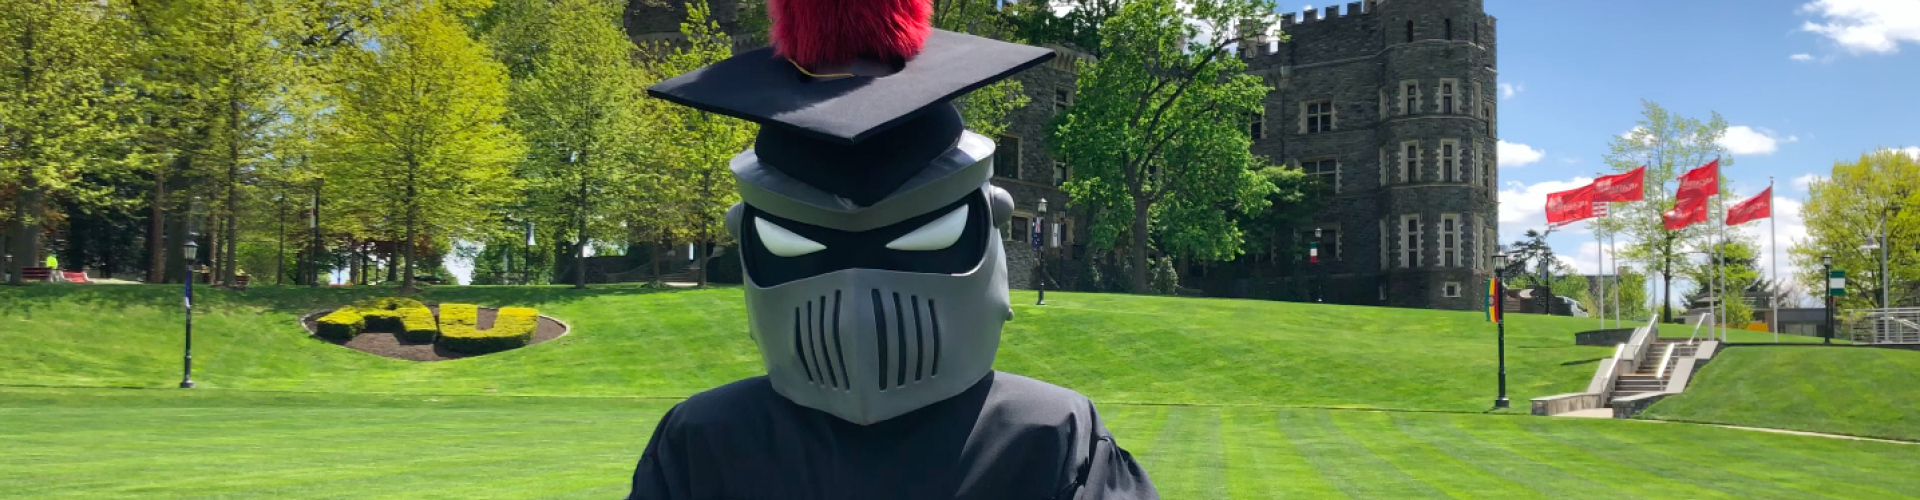 Knight in Cap and Gown